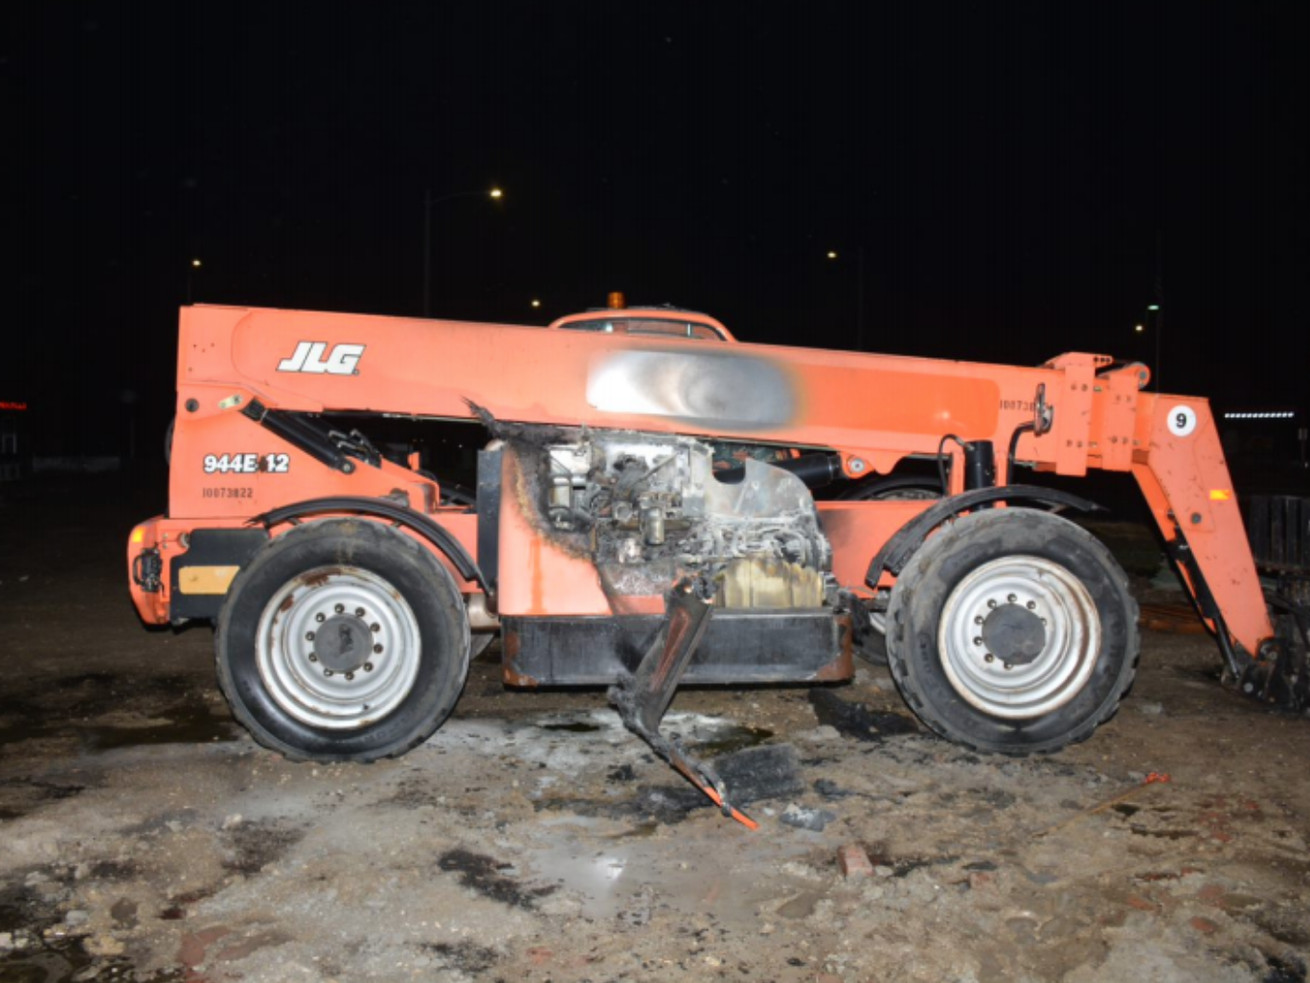 Police shared a photo of a damaged forklift that was set on fire Nov. 27 in Naperville.